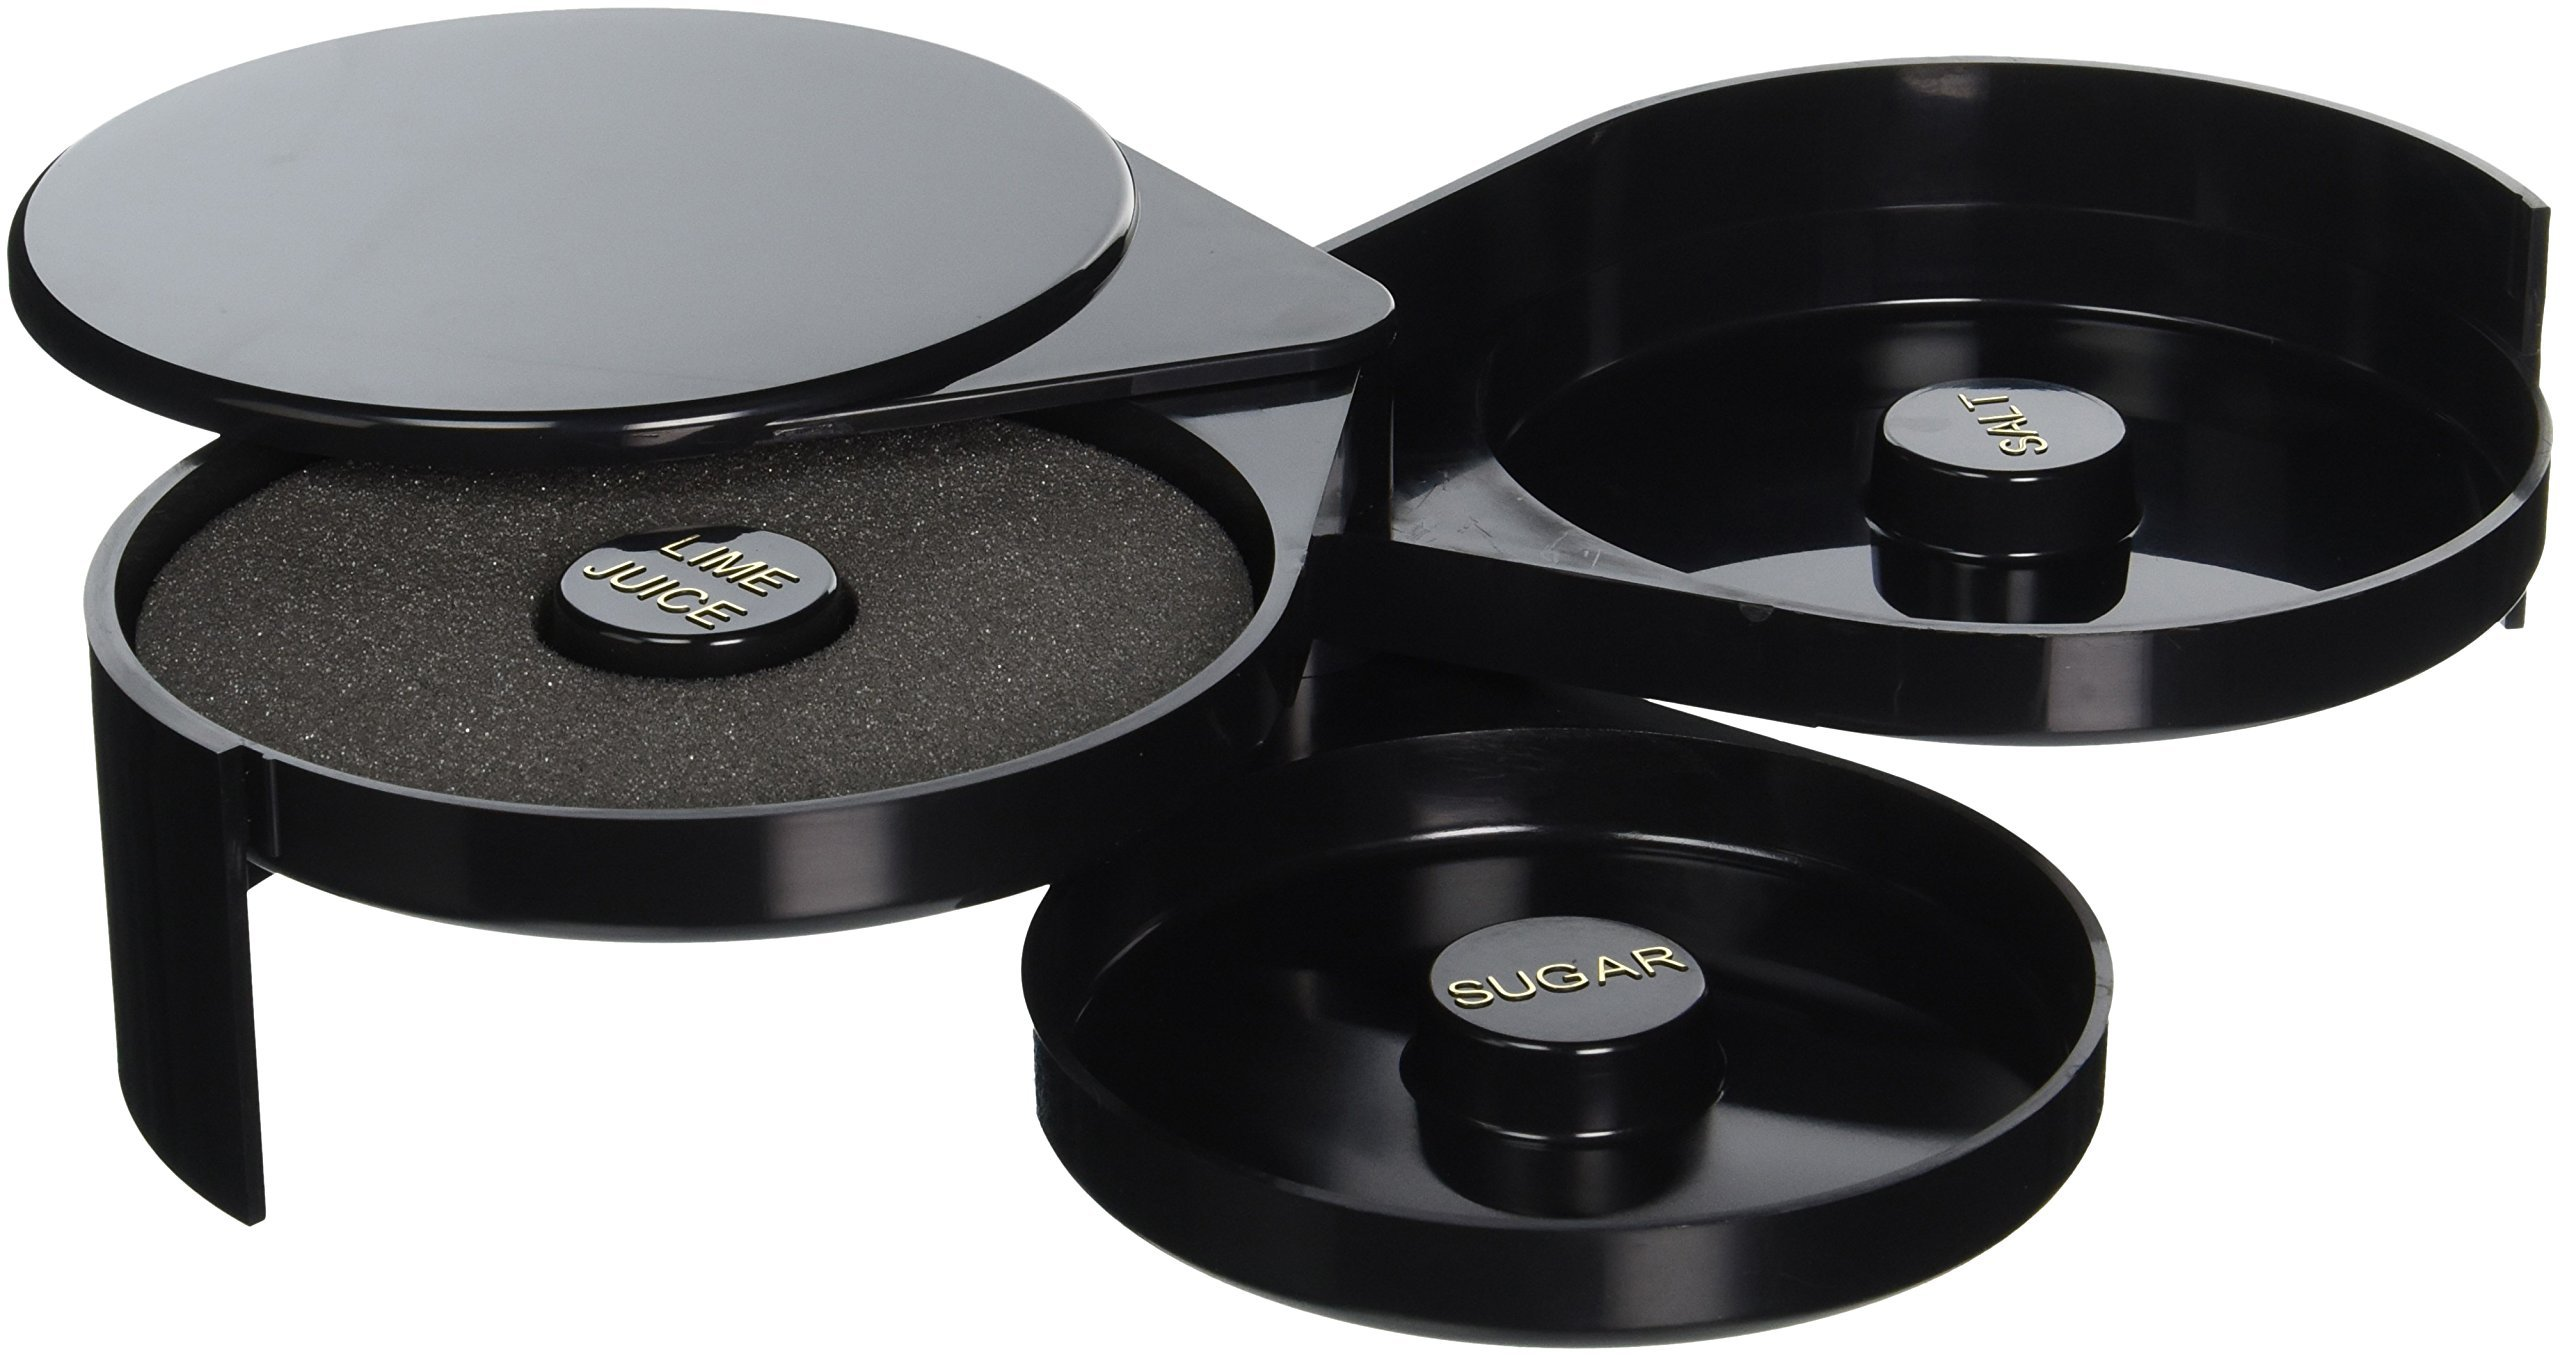 TableCraft's Glass Rimmer ABS Plastic, Includes 3 Swing Out Trays (H633)